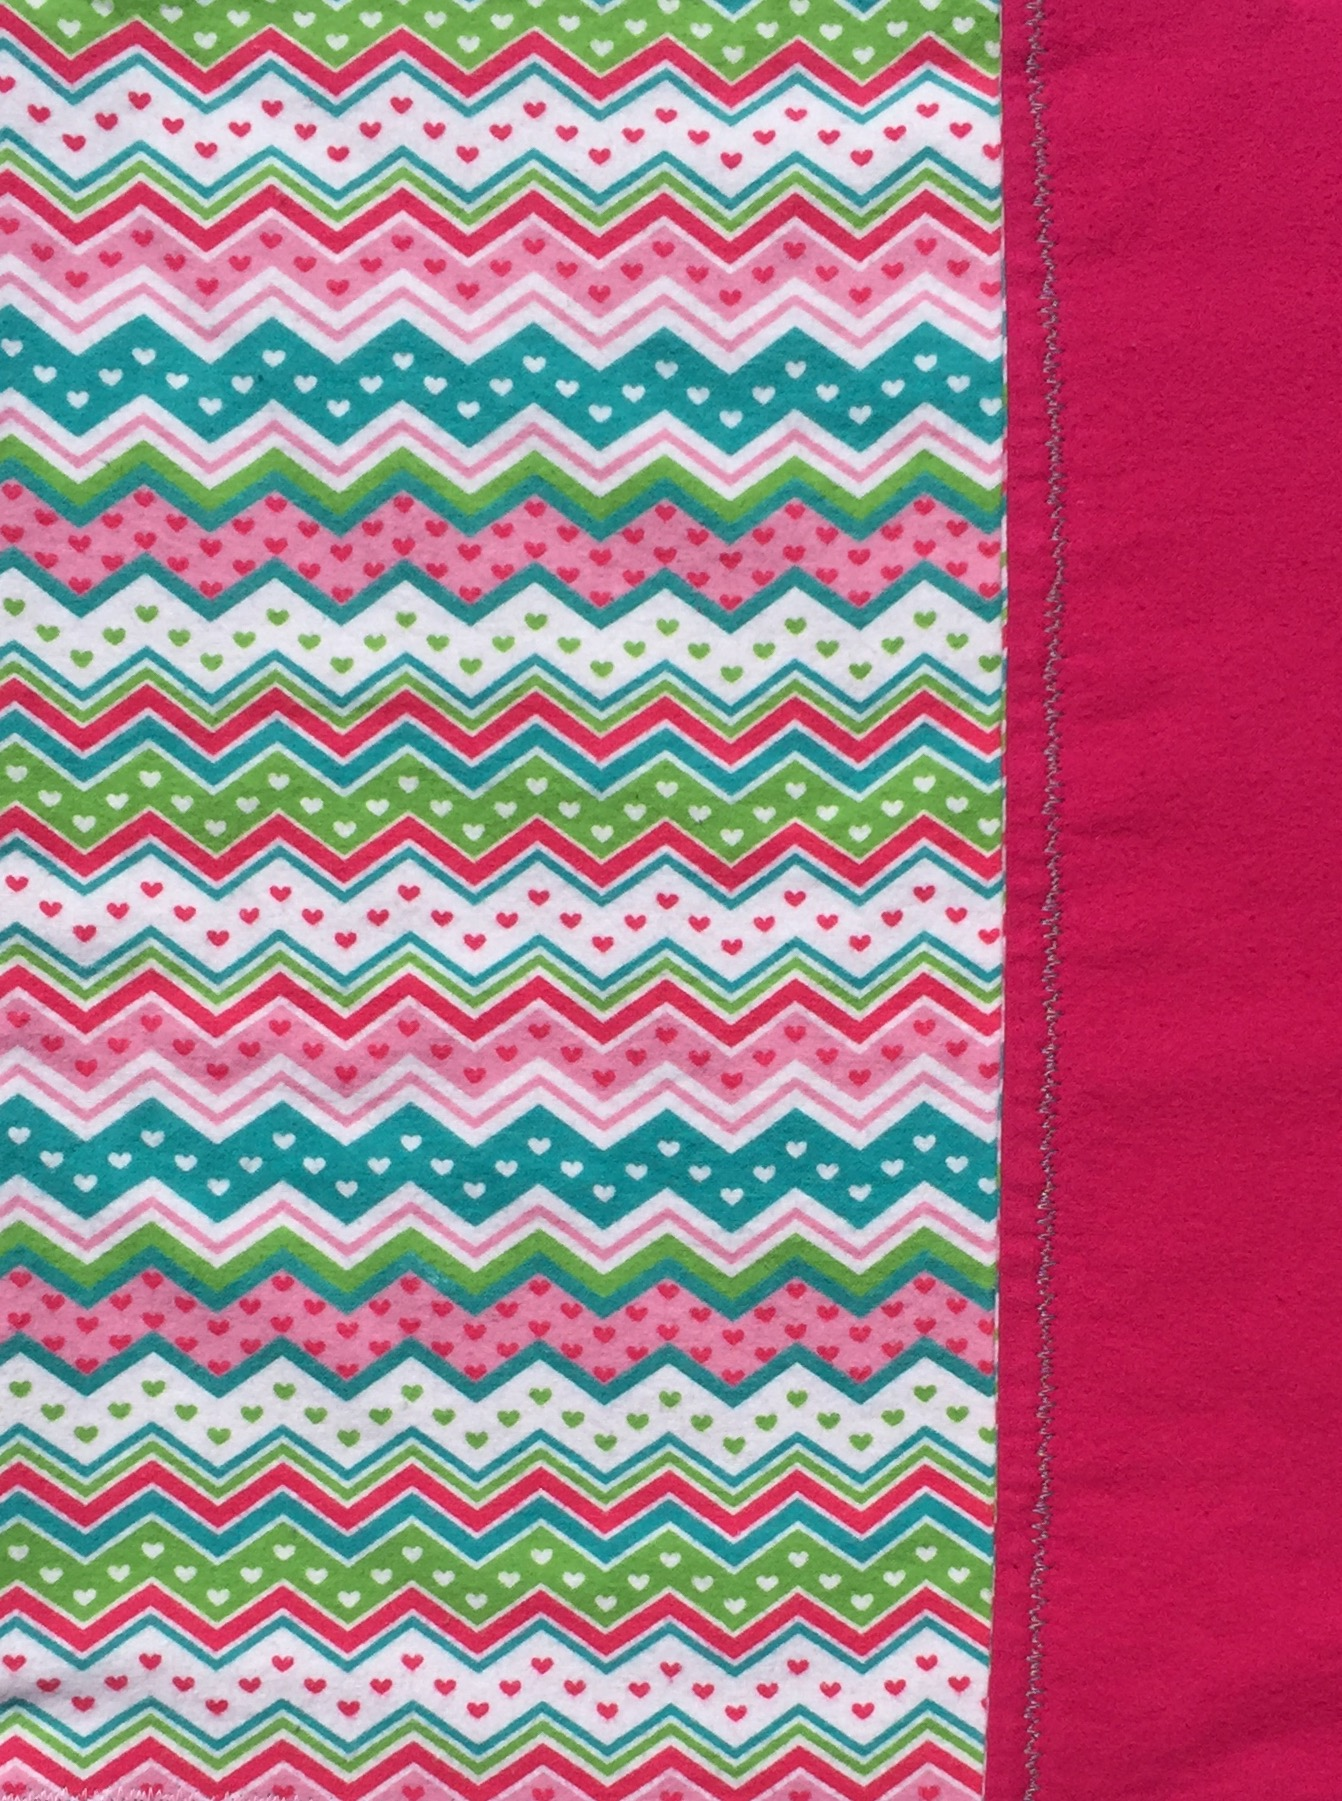 Chevrons & Hearts Baby Blanket